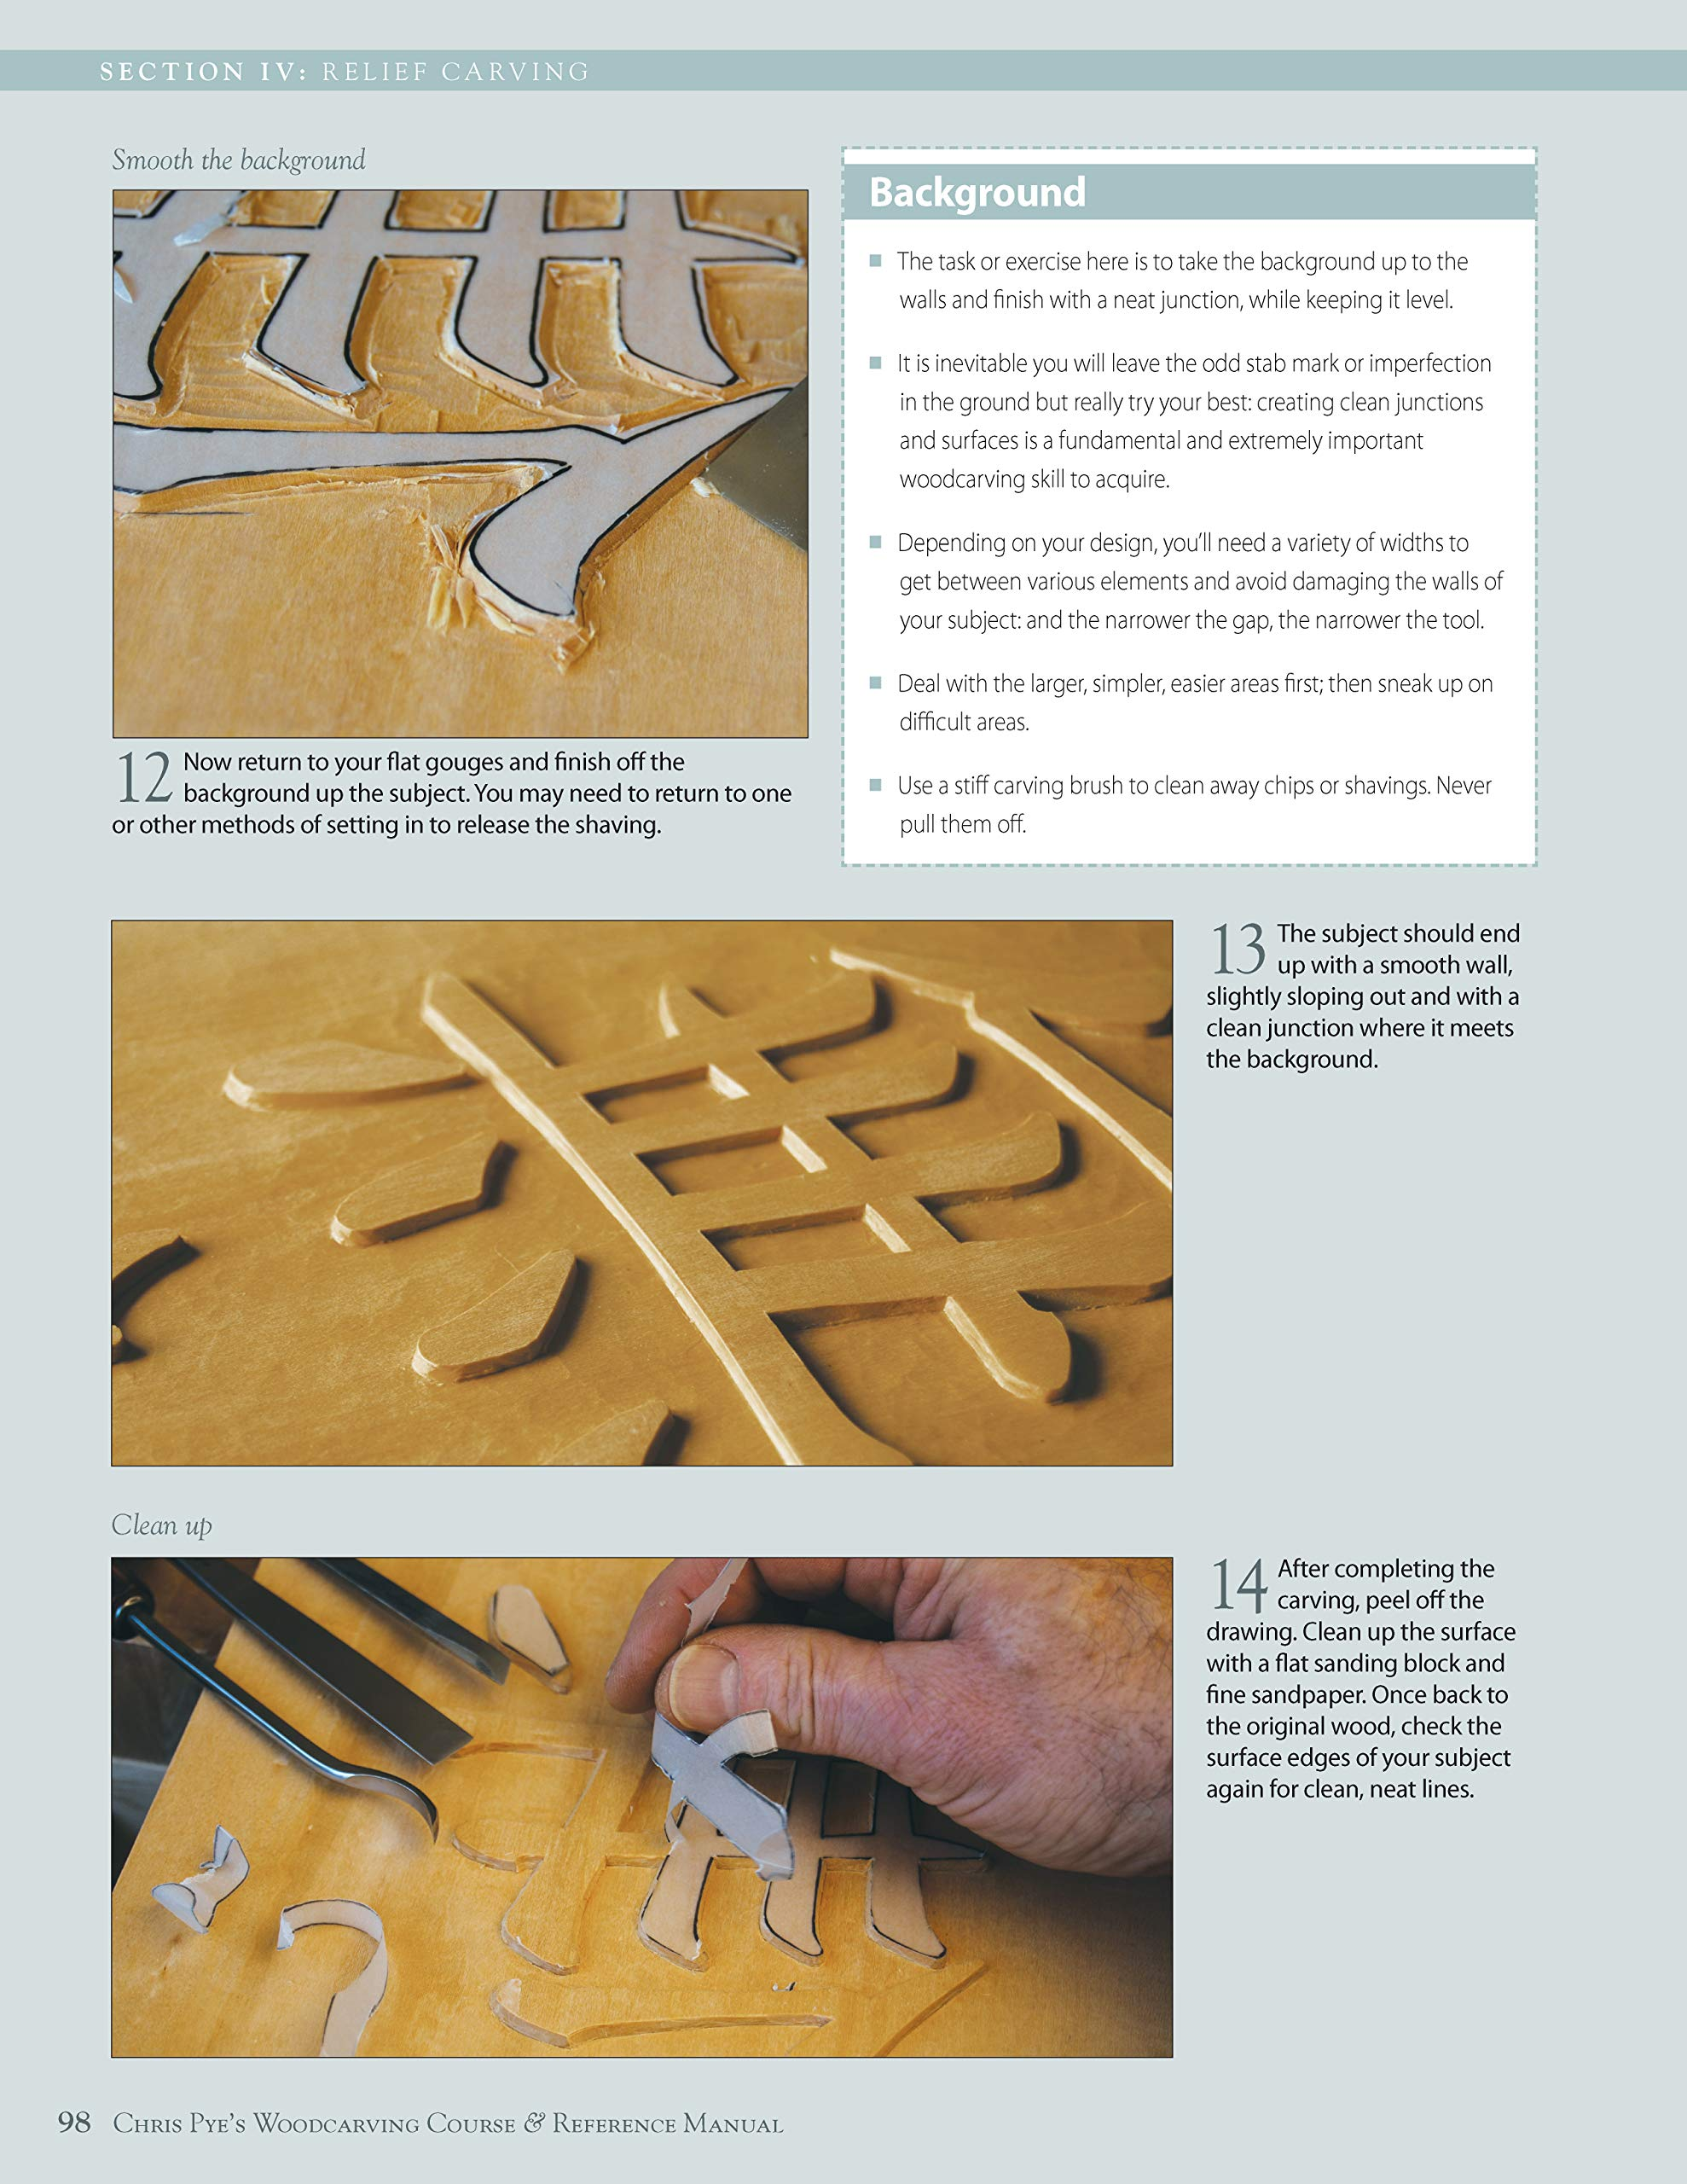 Chris pye s woodcarving course reference manual a beginner s